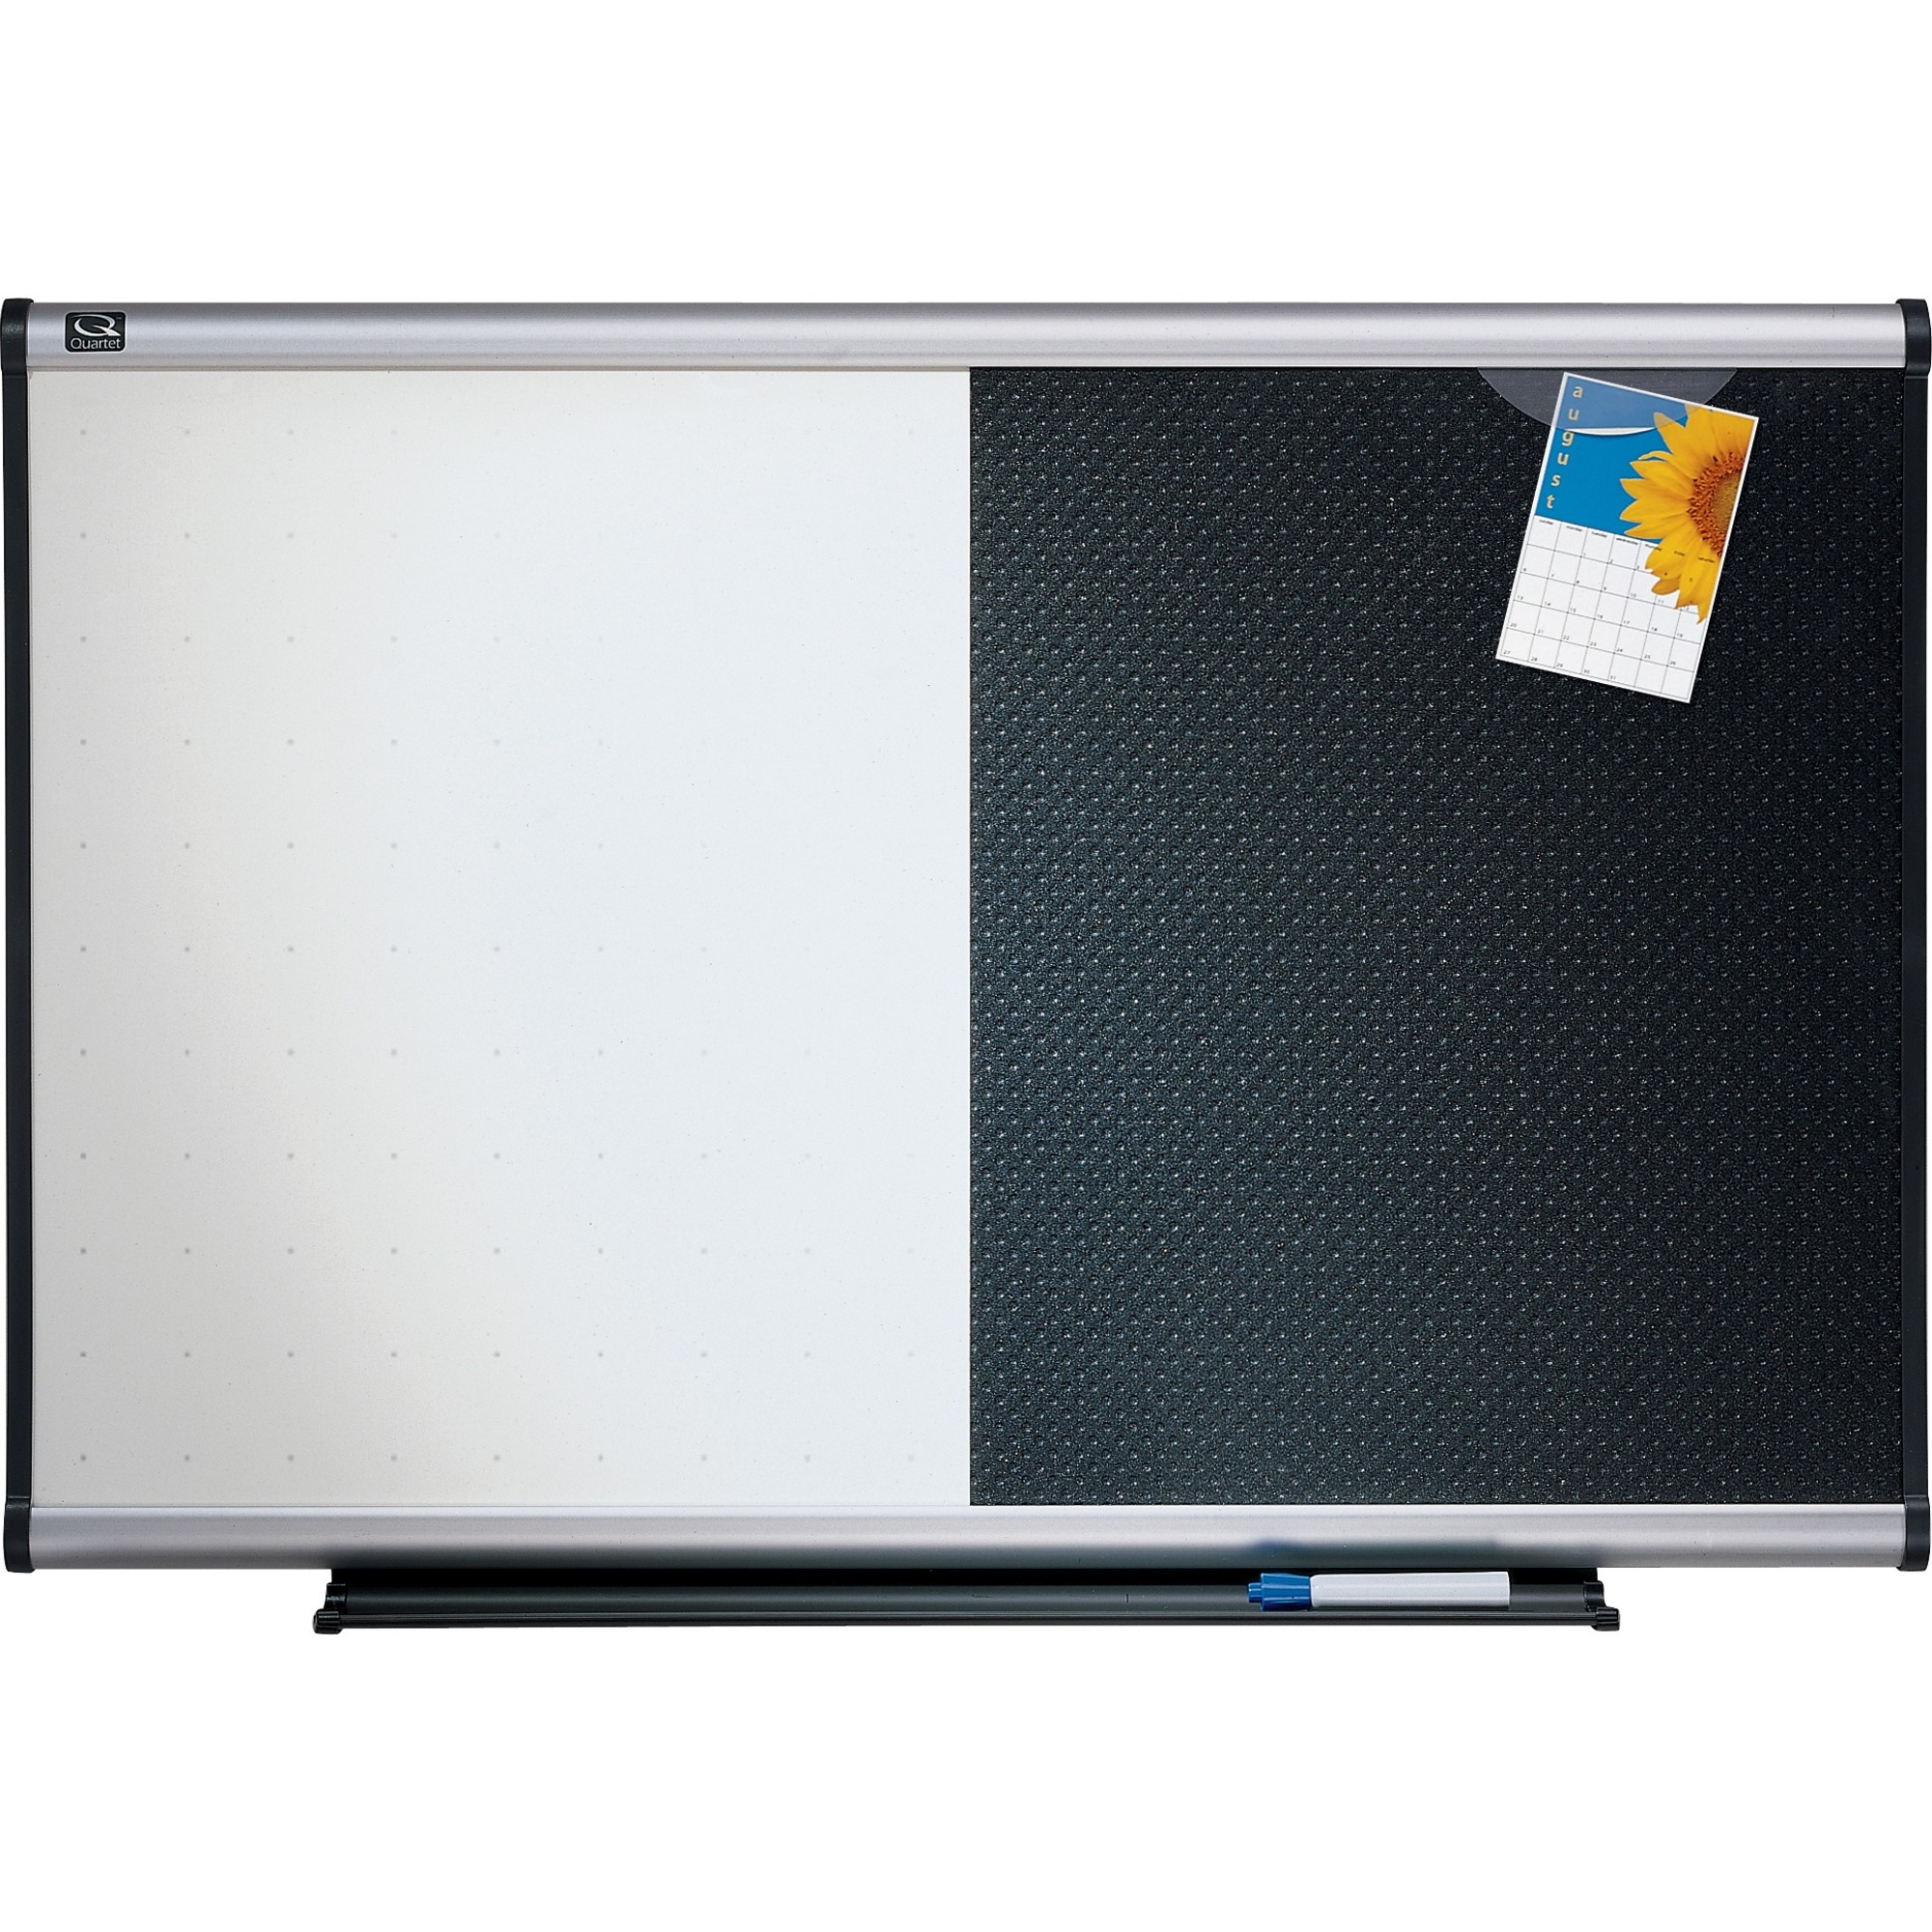 Acco Brands Corporation Quartet® Prestige® Combination Board, 3 X 2, Total Erase®/embossed Foam, Aluminum Frame - 36 (3 Ft) Width X 24 (2 Ft) Height - Black Foam Surface - Silver Aluminum Frame - Horizontal - 1 / Each